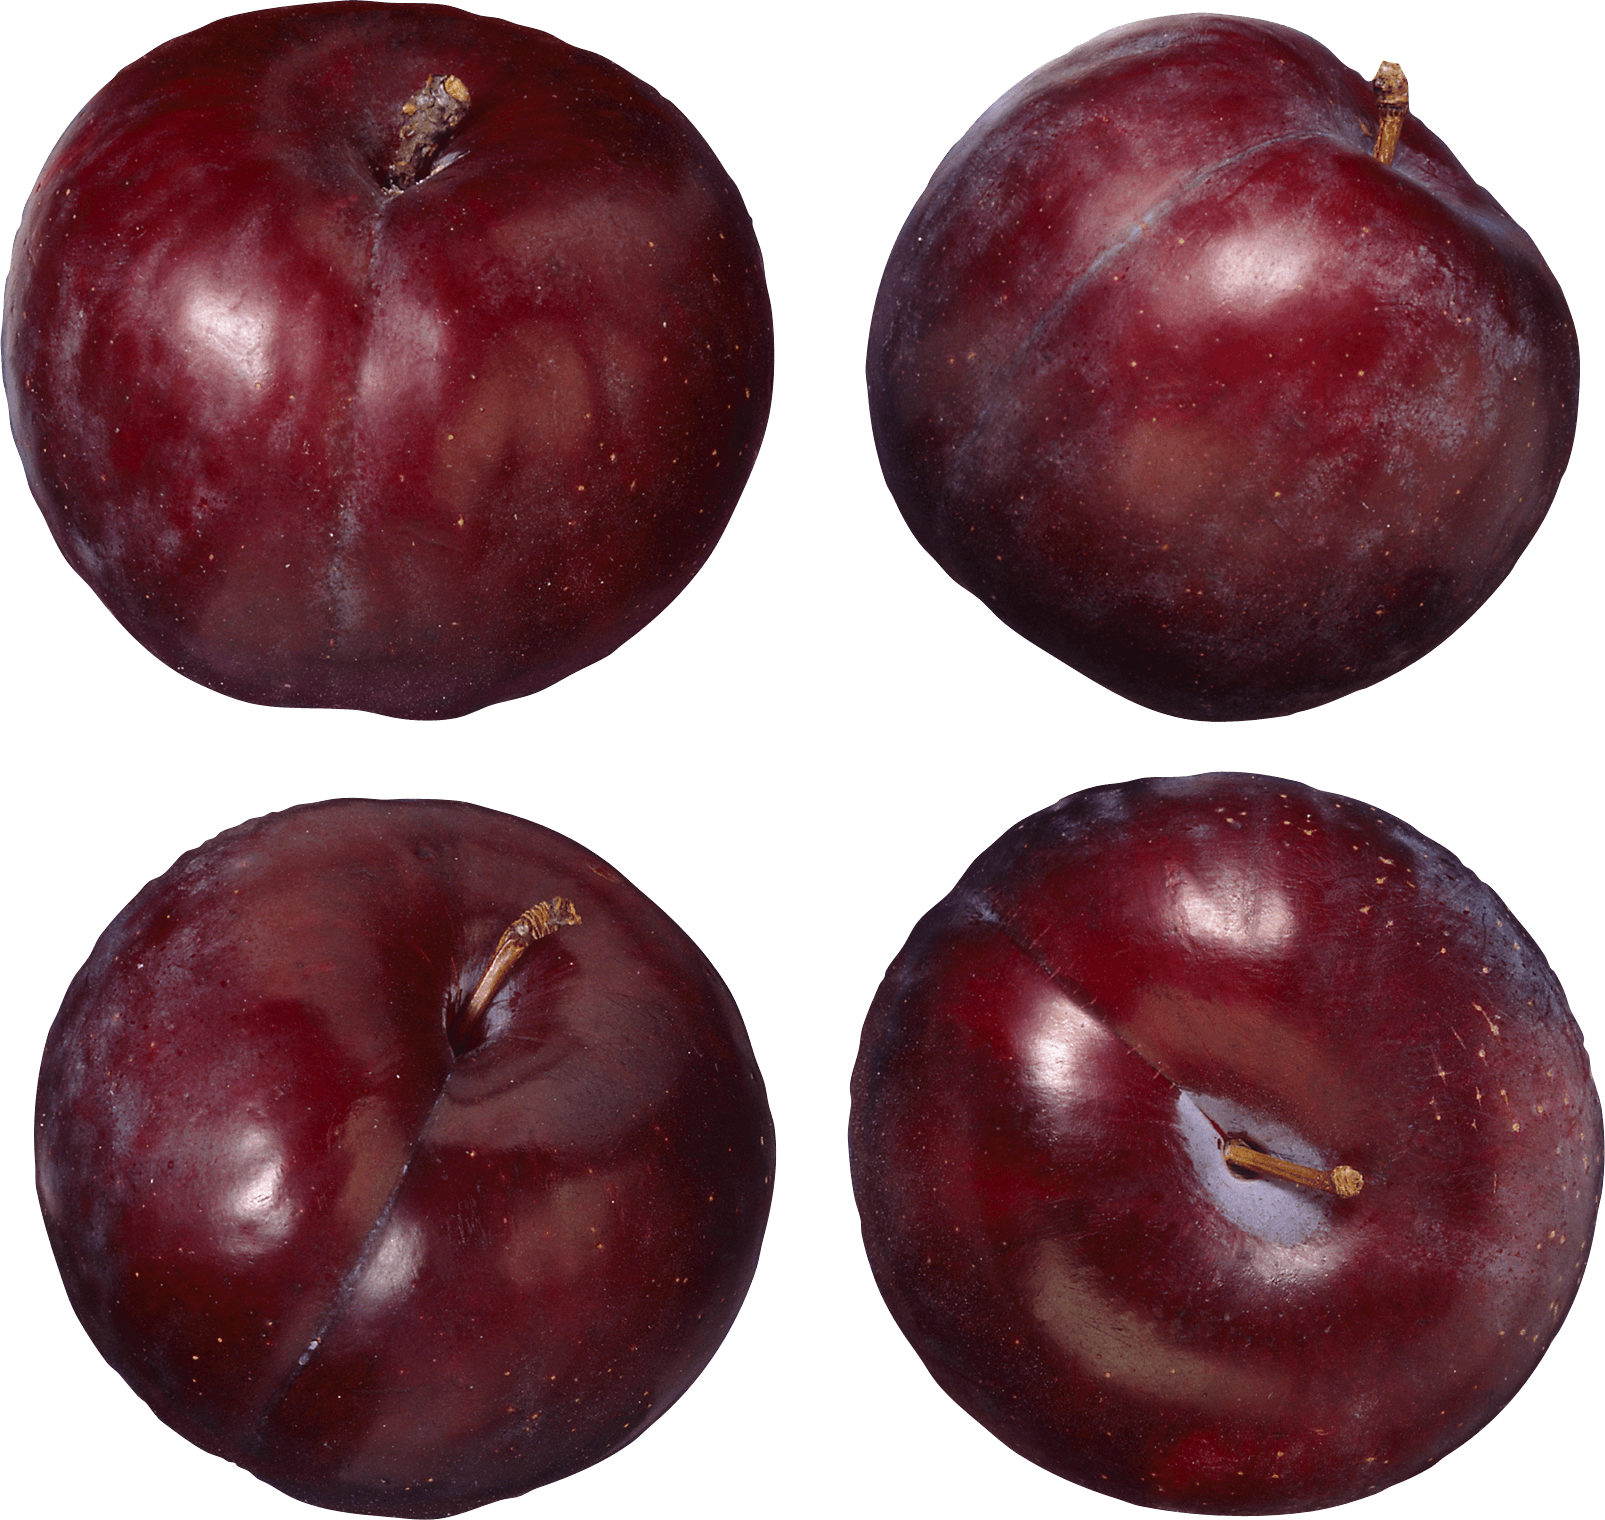 Download PNG image - Plum Png Image - Plum HD PNG